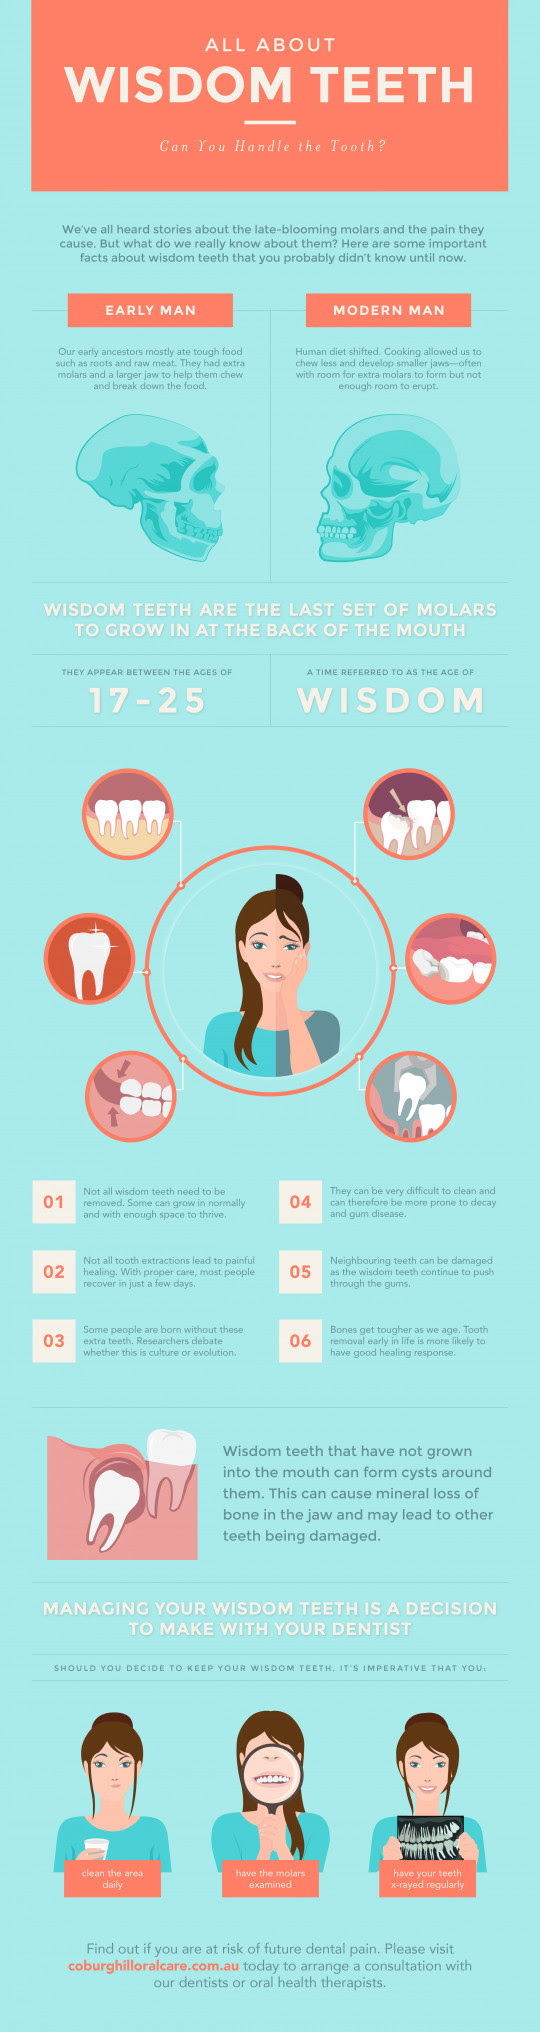 All About Wisdom Teeth. Can You Handle the Tooth?